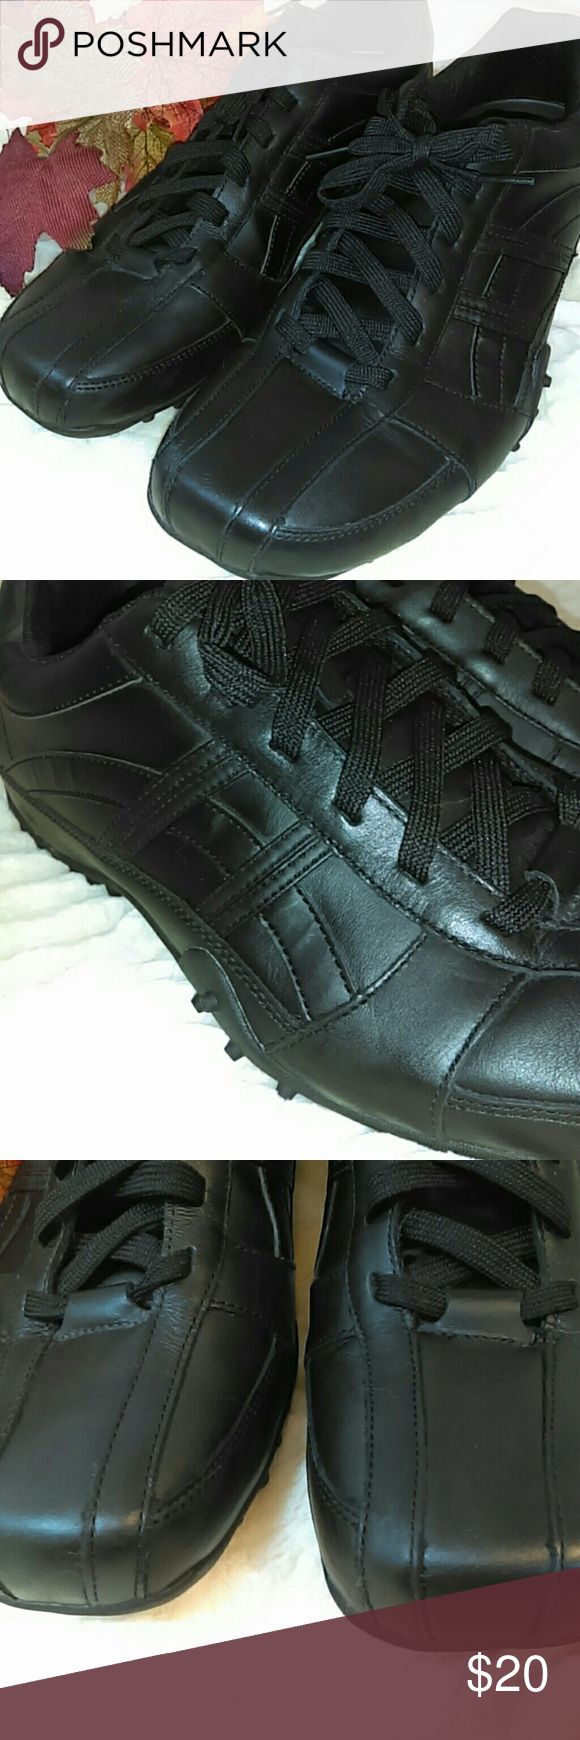 Skechers Work Shoes * Skechers Slip Resistant EH Work Shoes for Men. * Black. * Size 11 * Leather/Synthetic Upper with Rubber Sole. * Excellent Condition - worn once. Skechers Shoes